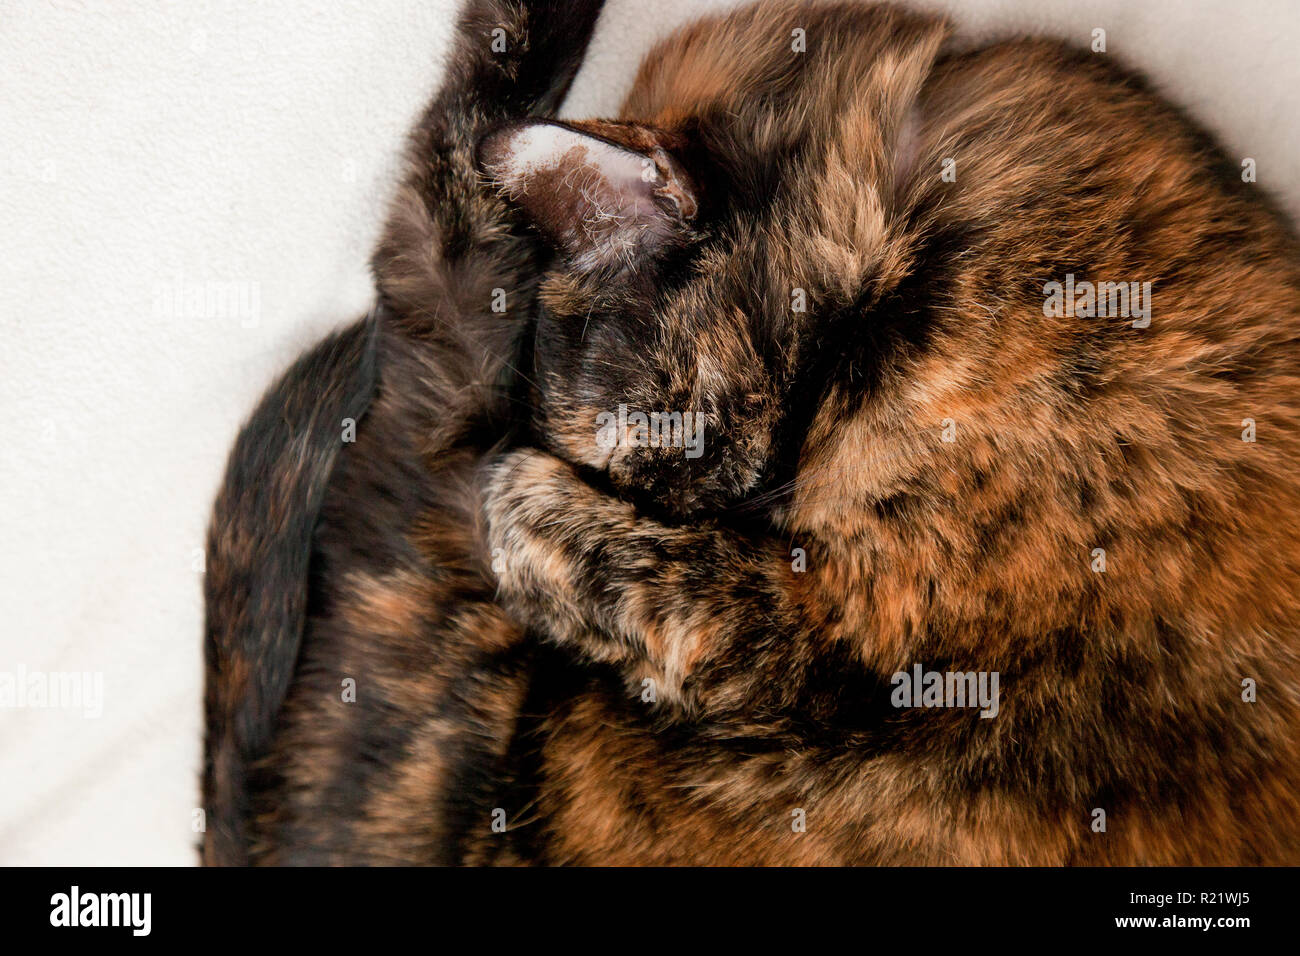 Cute little cat curled up wanting to be left alone to sleep and hide - Stock Image